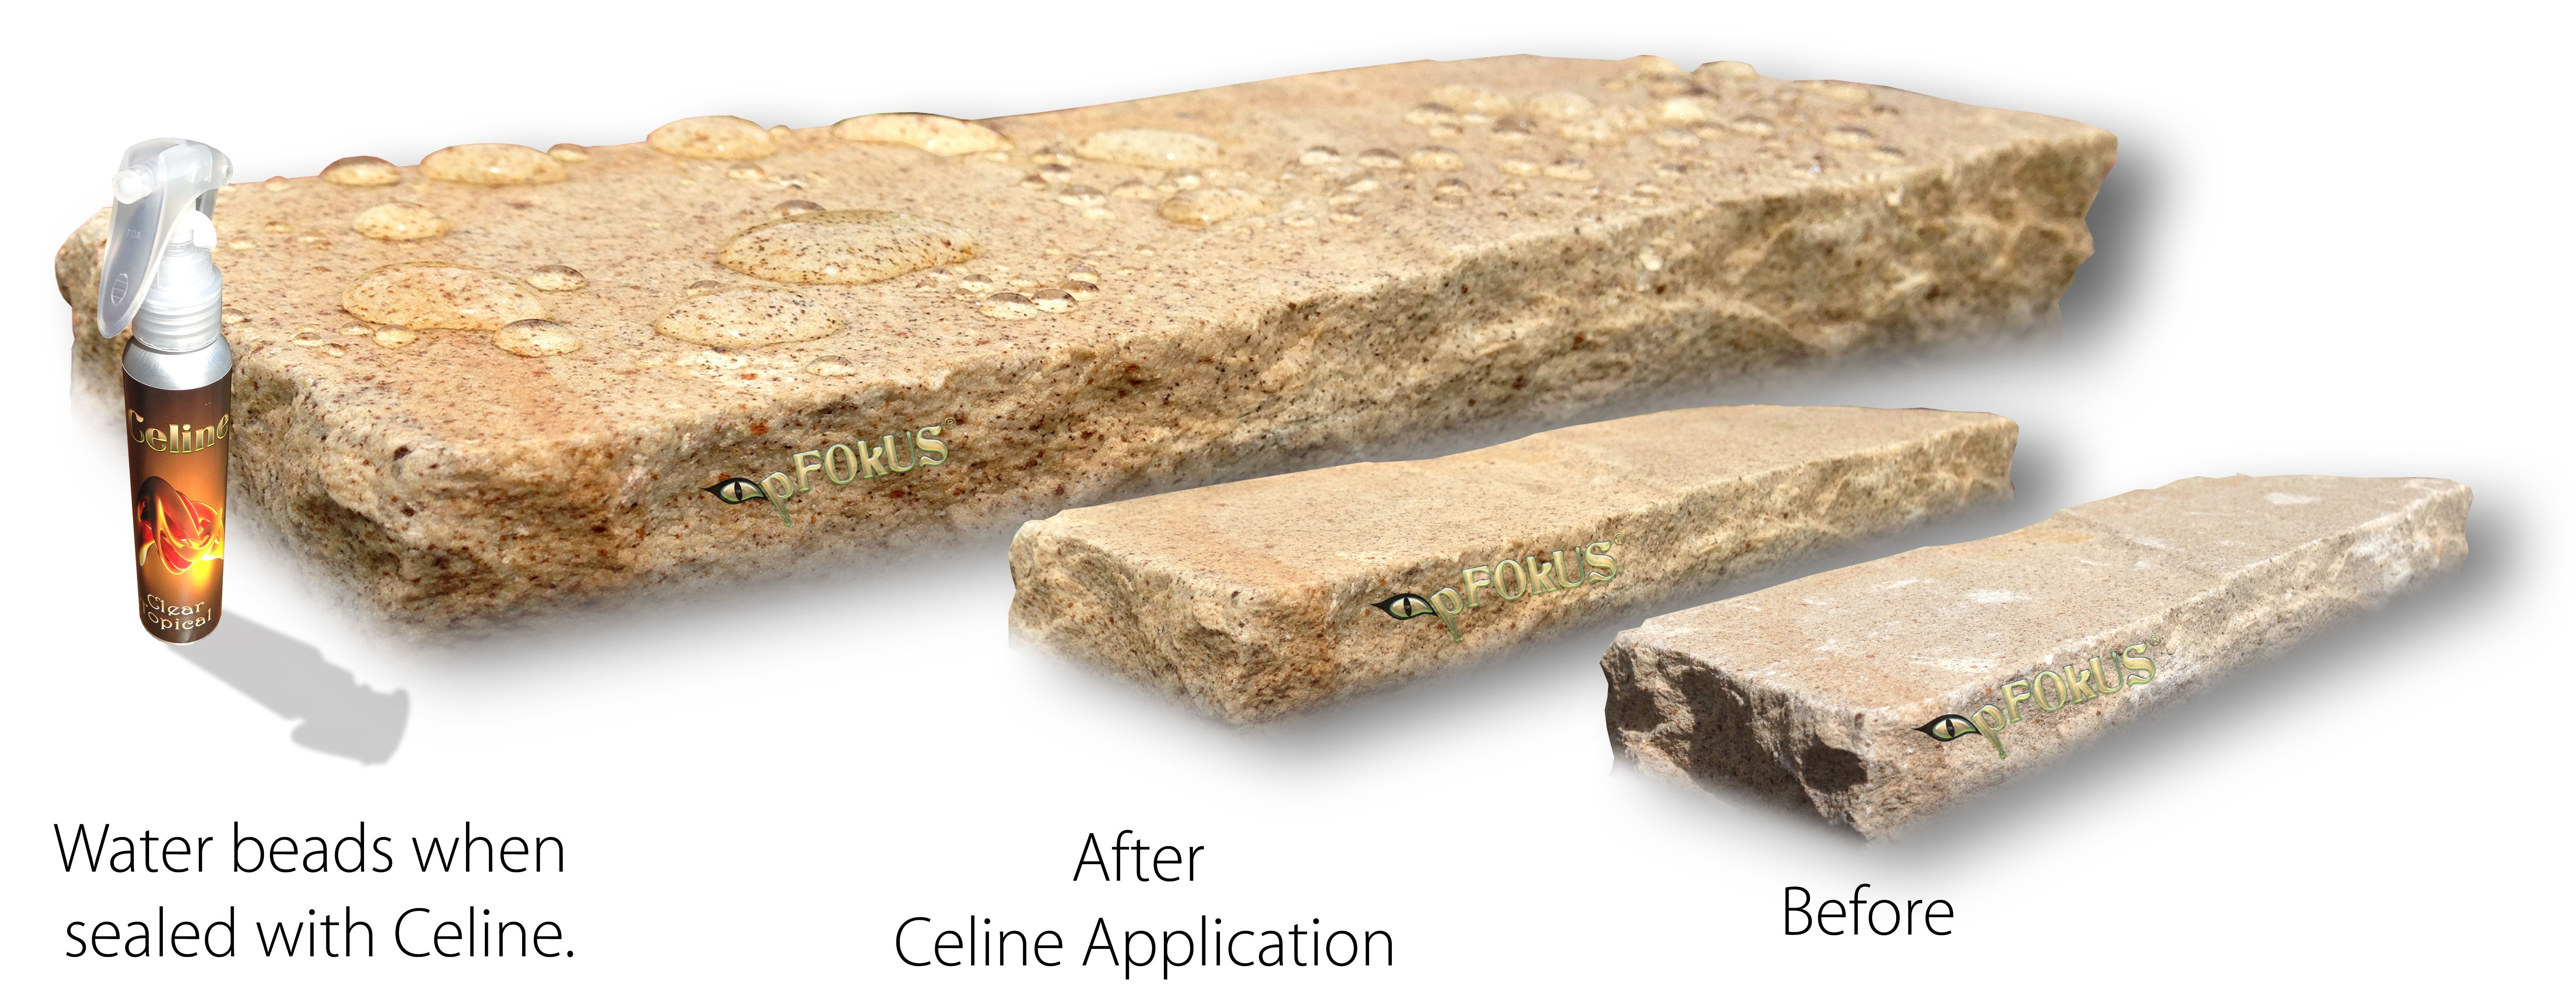 Celine Is A Hydrophobic Solvent Sealer That Builds A Glossy Finish